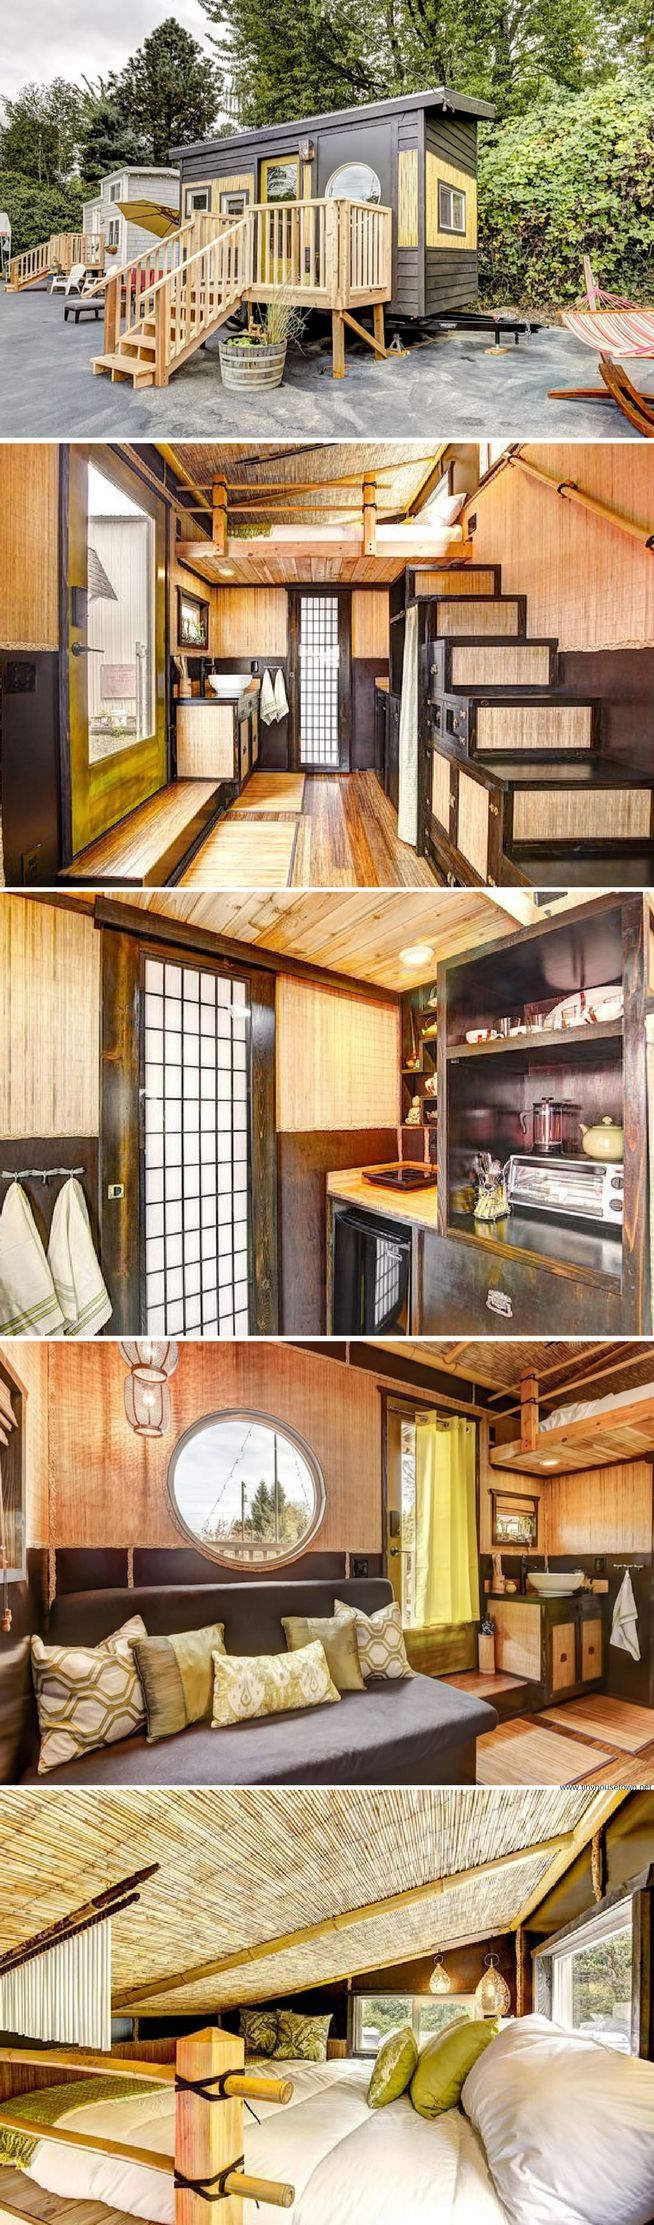 closet by design 2904 best images about tiny house on tiny 30555